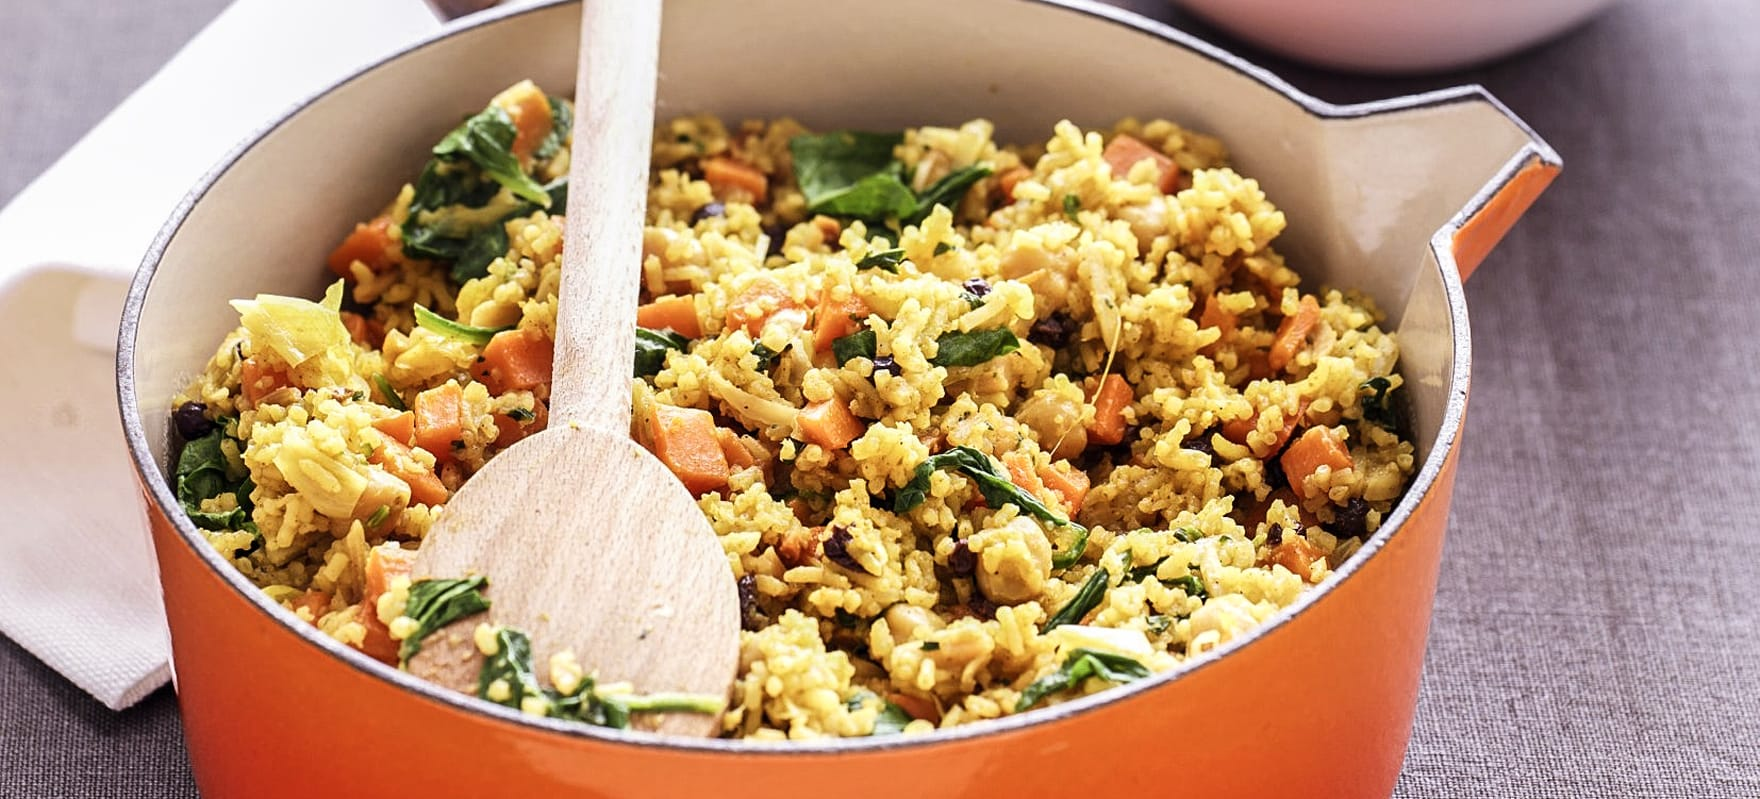 Chickpea pilaf with spinach image 1